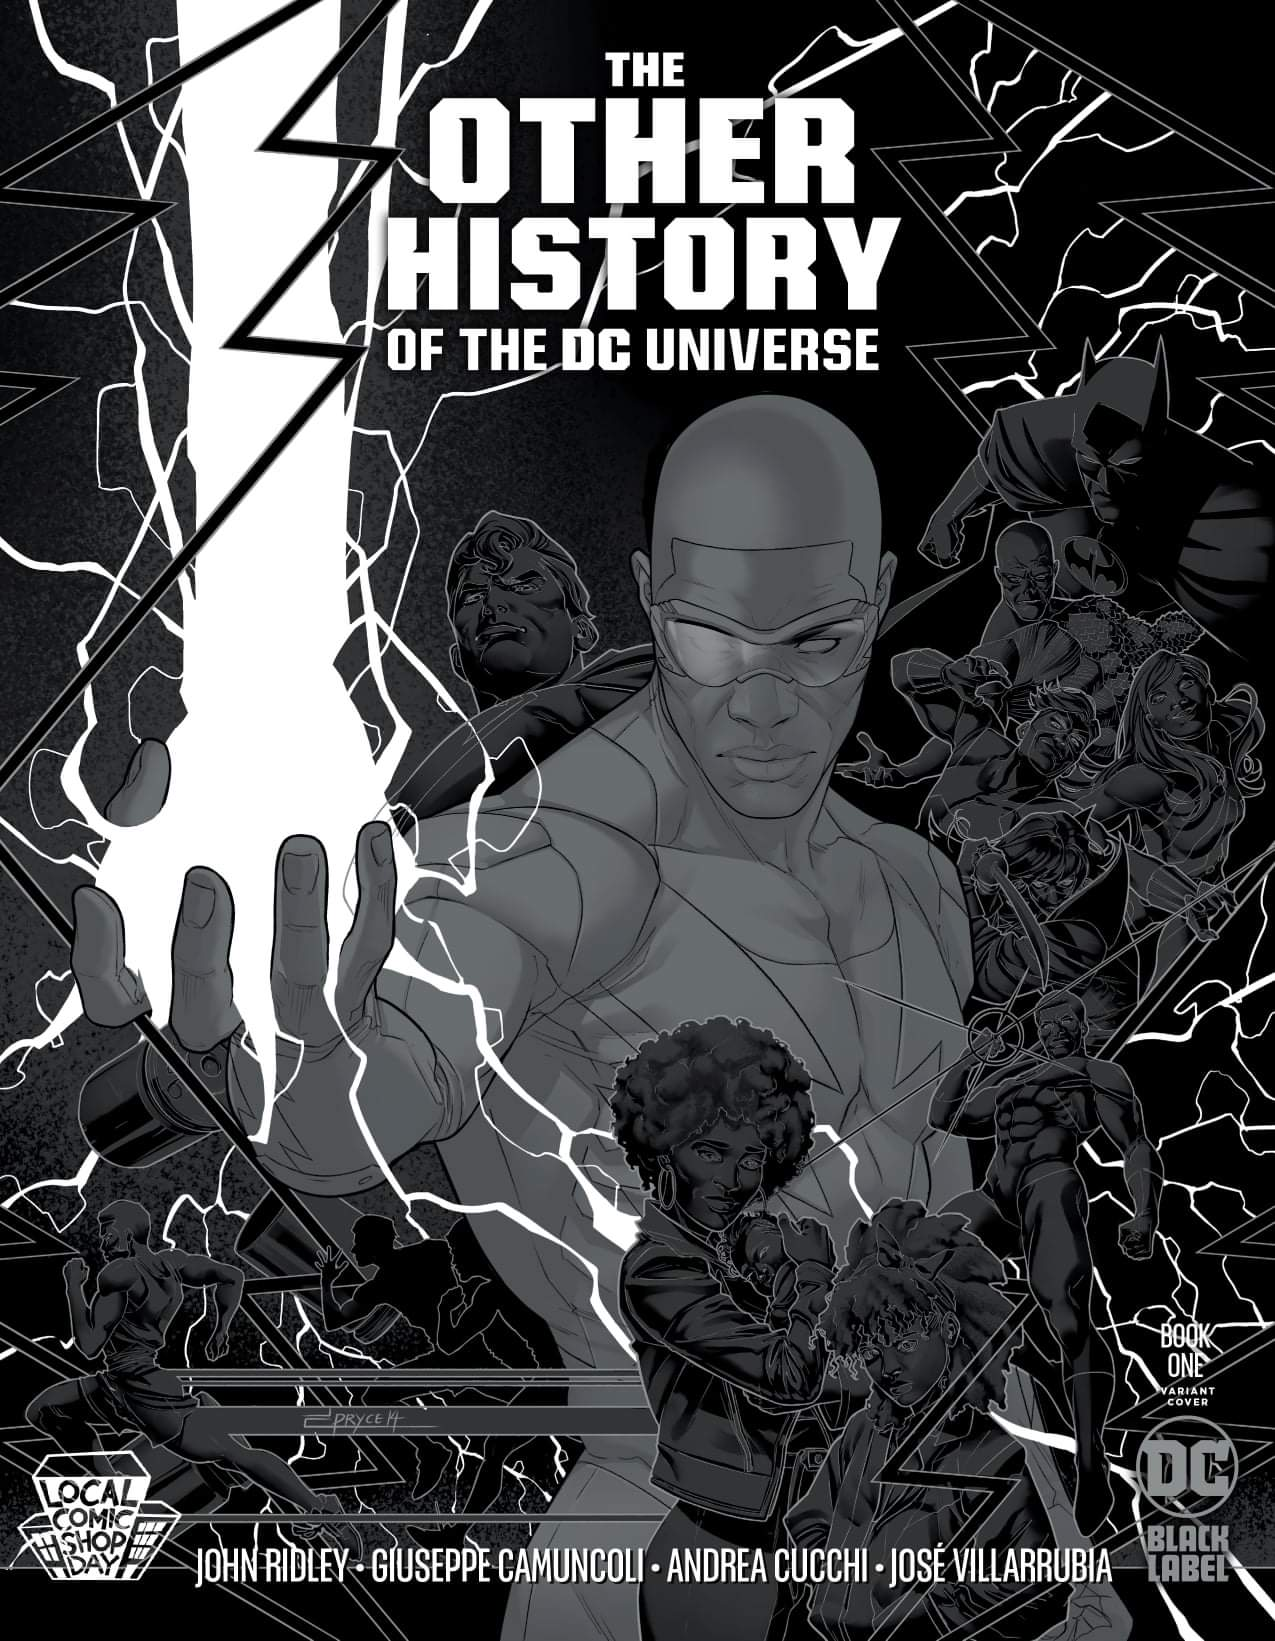 11/24/2020 OTHER HISTORY OF THE DC UNIVERSE #1 (OF 5) METALLIC LCSD VARIANT